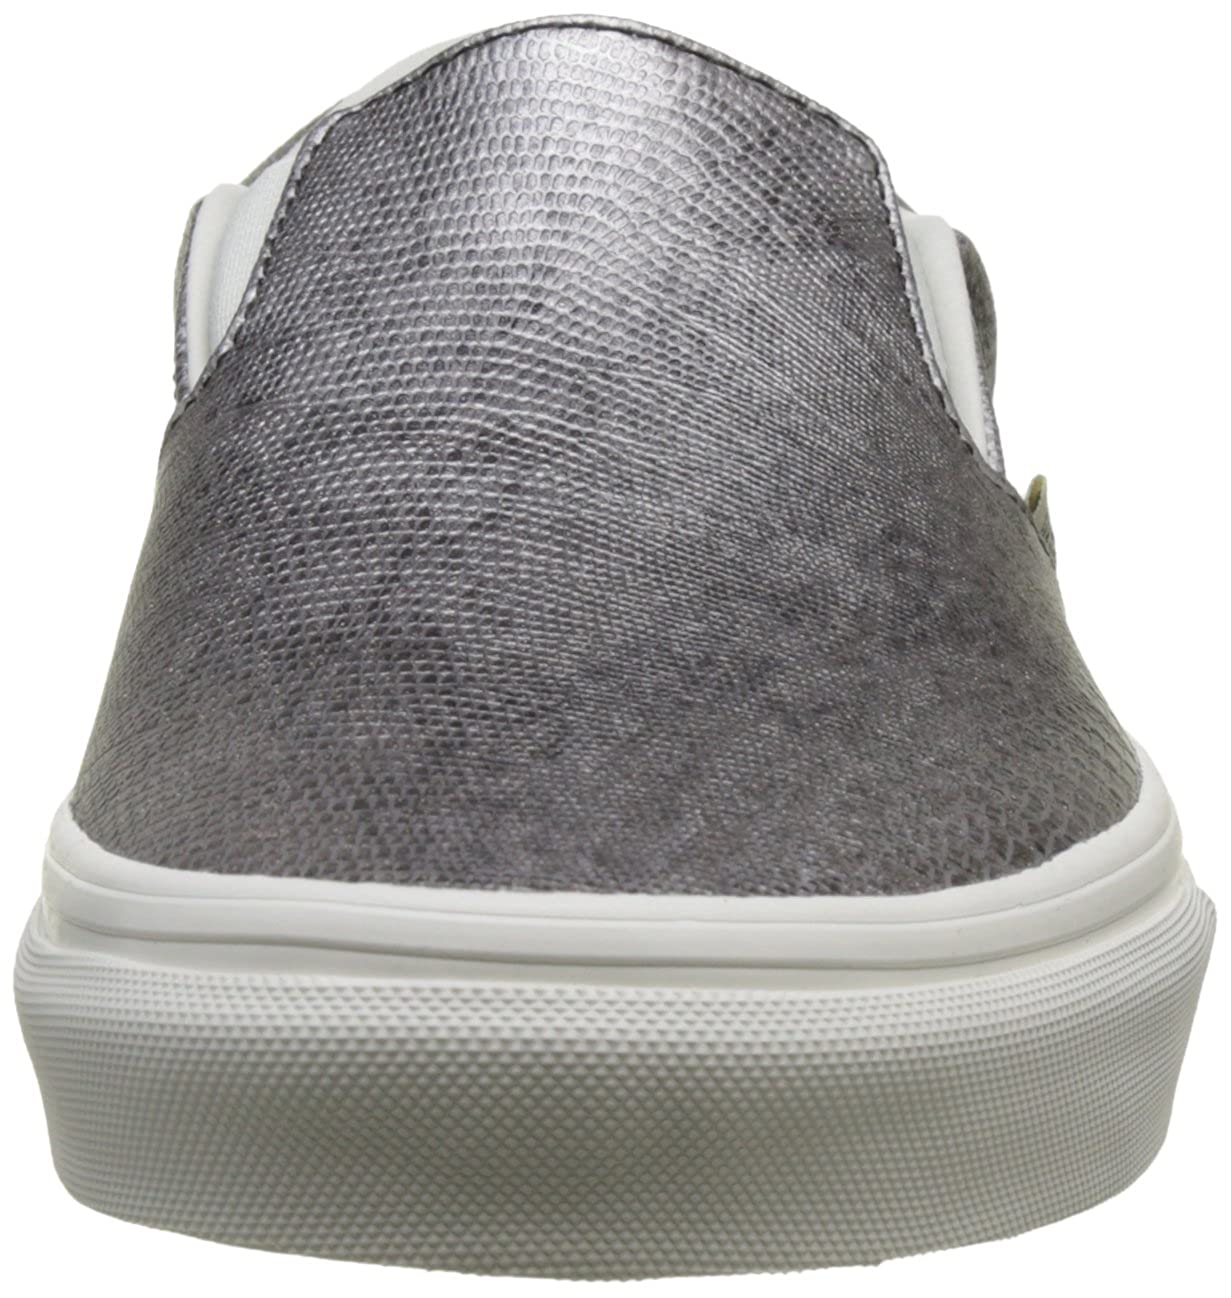 baa140bcdc602b Vans Unisex Adults  Classic Slip-on Low-Top Sneakers  Amazon.co.uk  Shoes    Bags